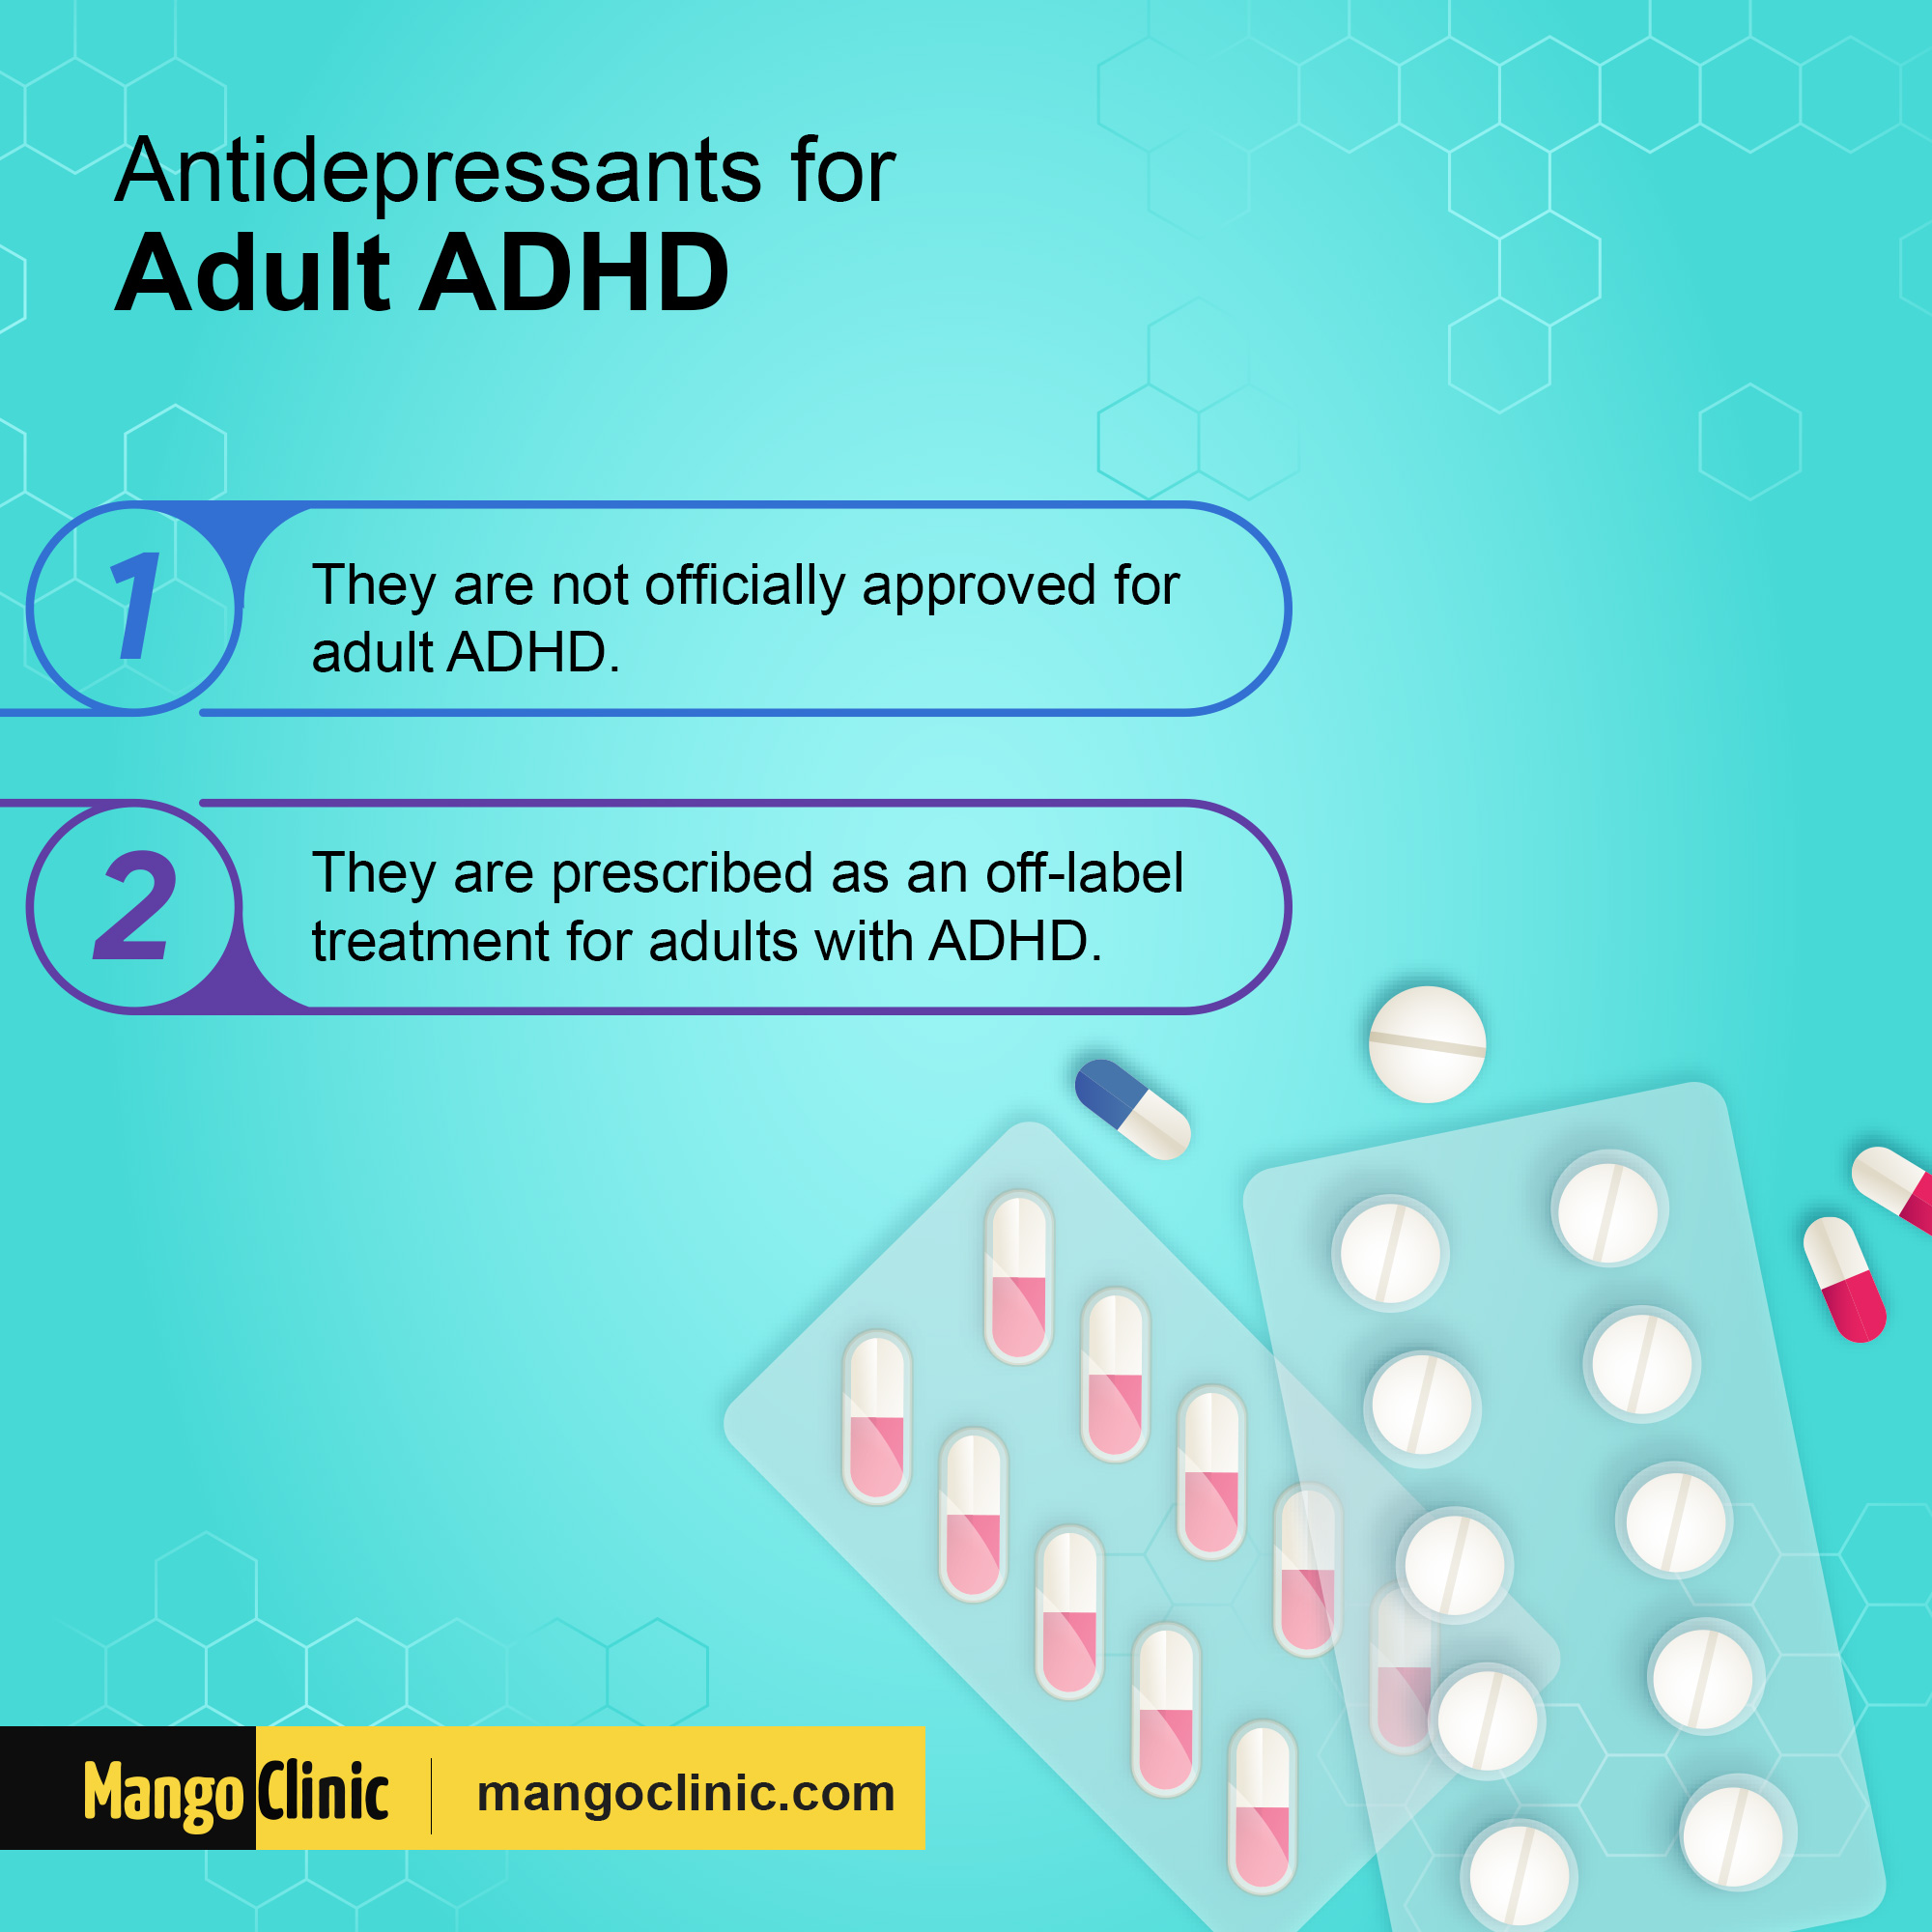 Antidepressants for ADHD